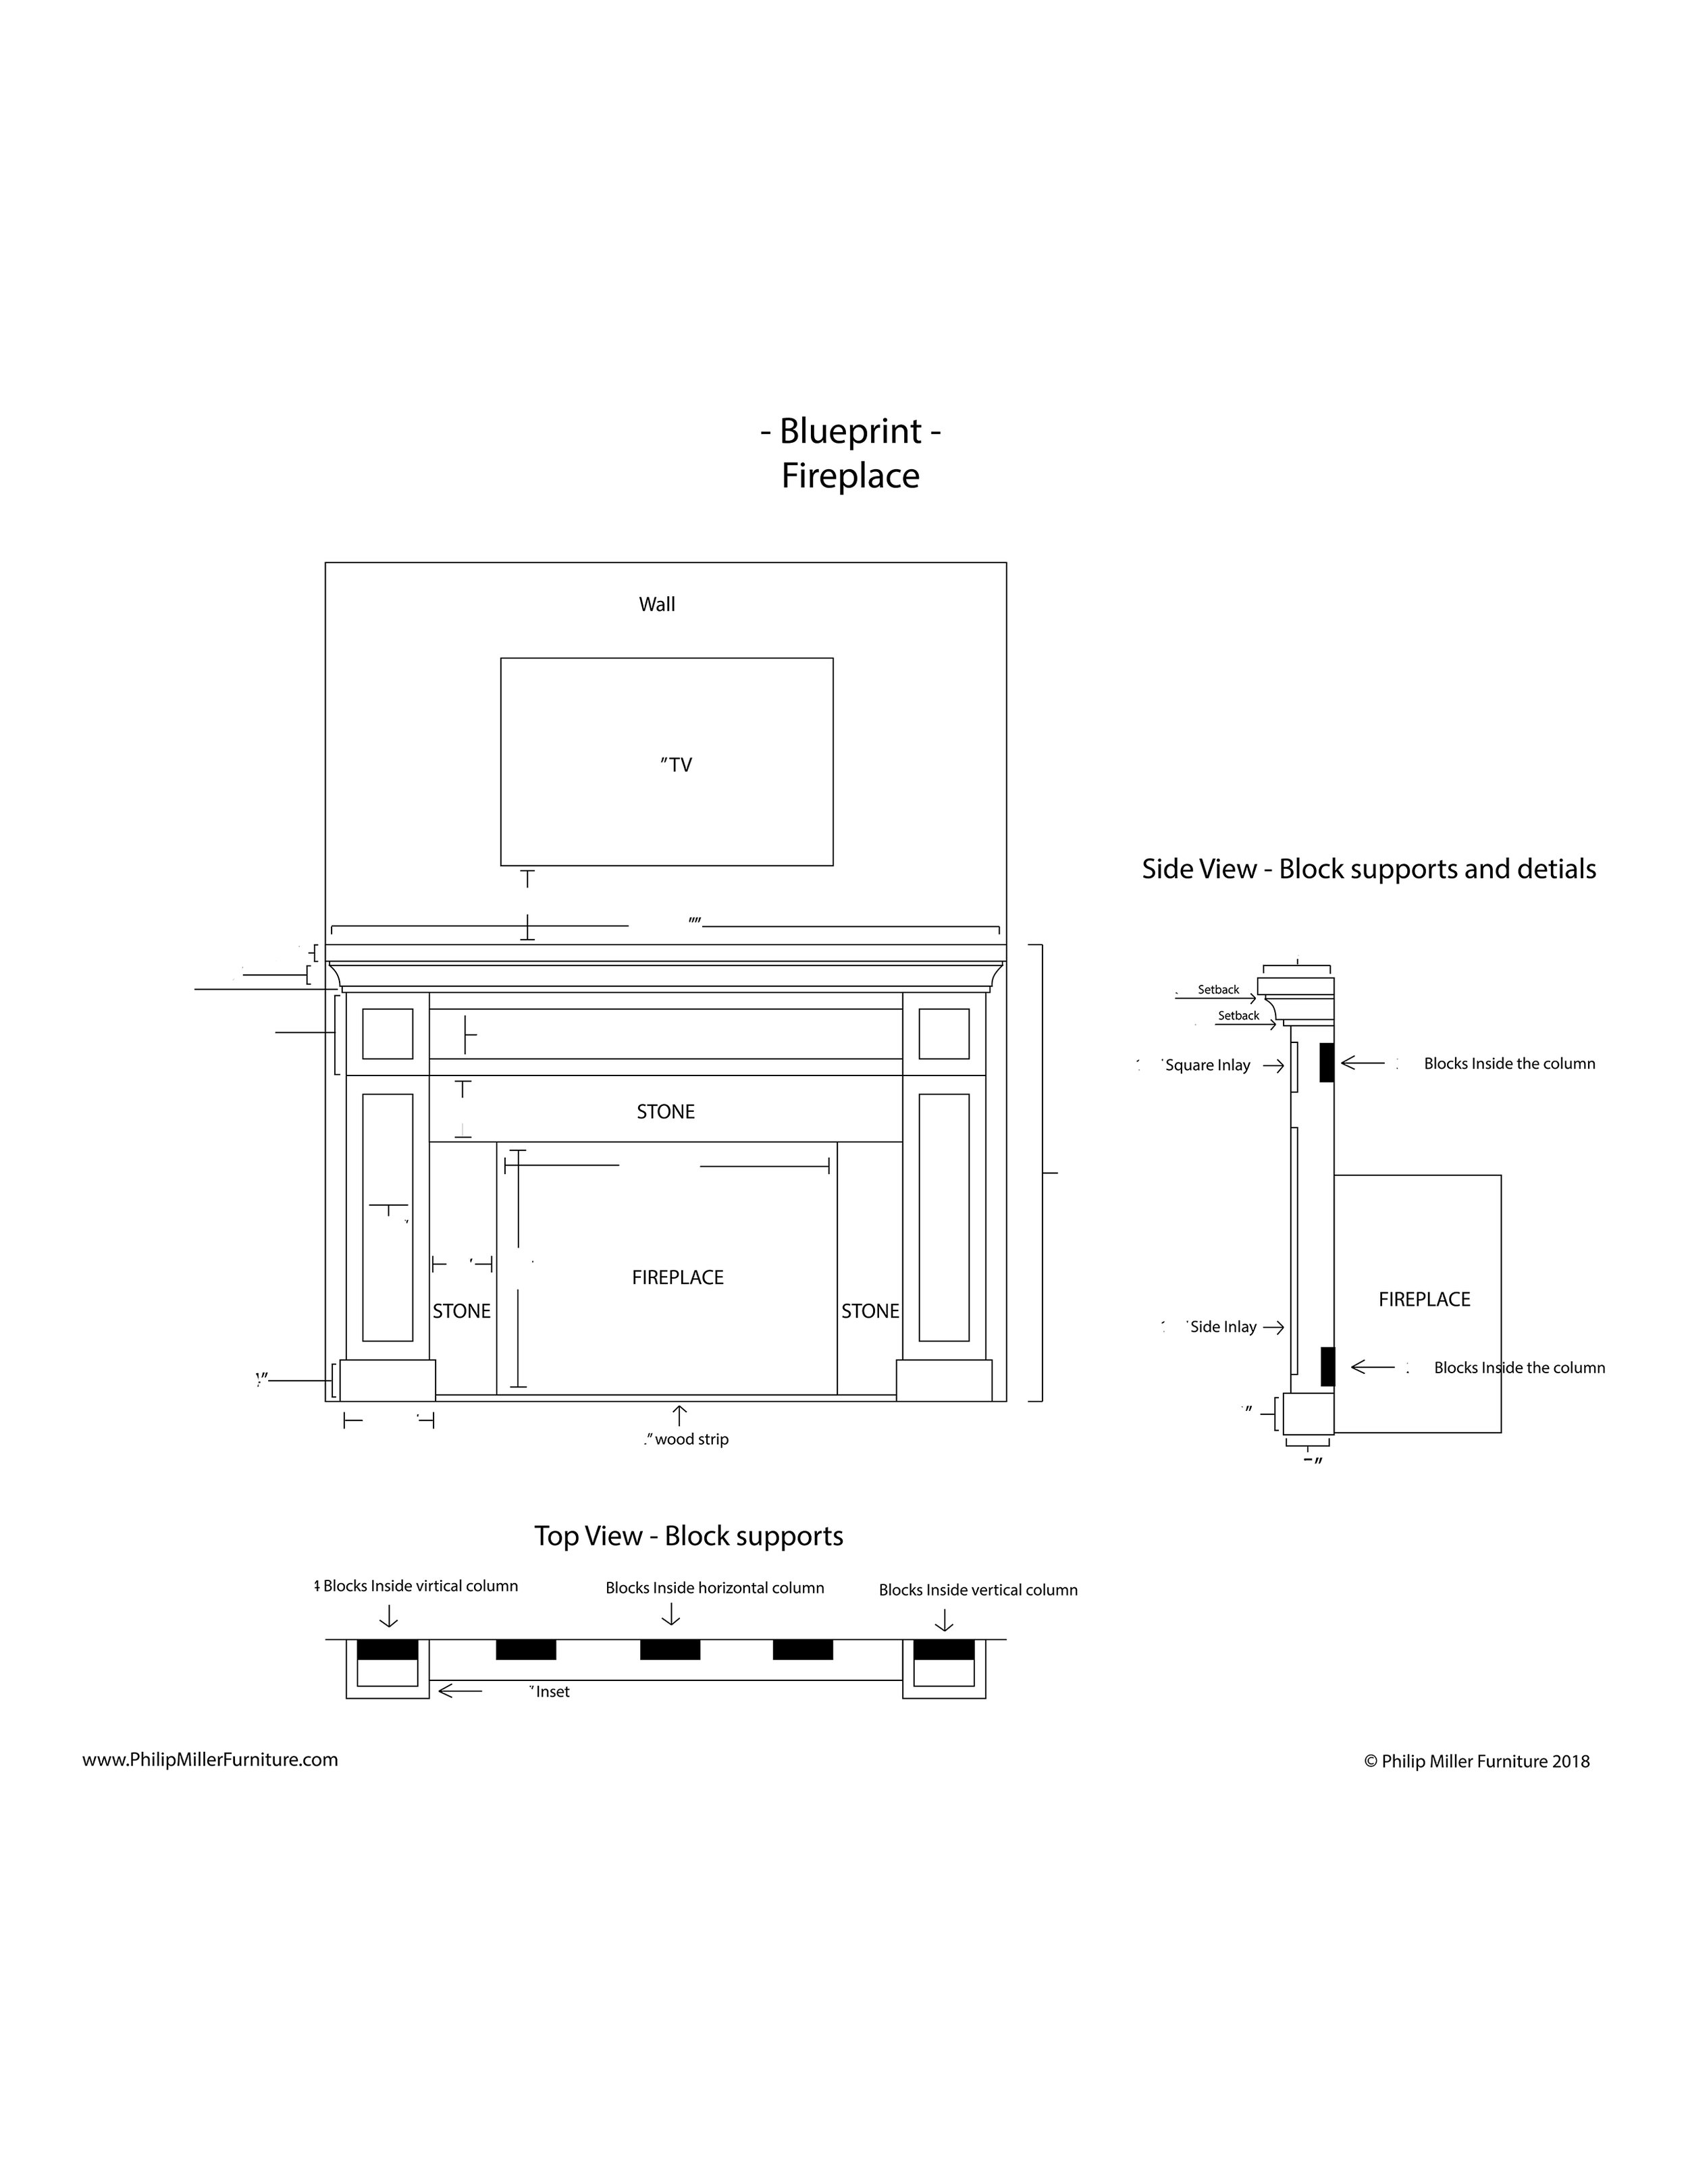 Build Instructions   - Shaker Fireplace Mantel, Cabinets & Shelves    - $20